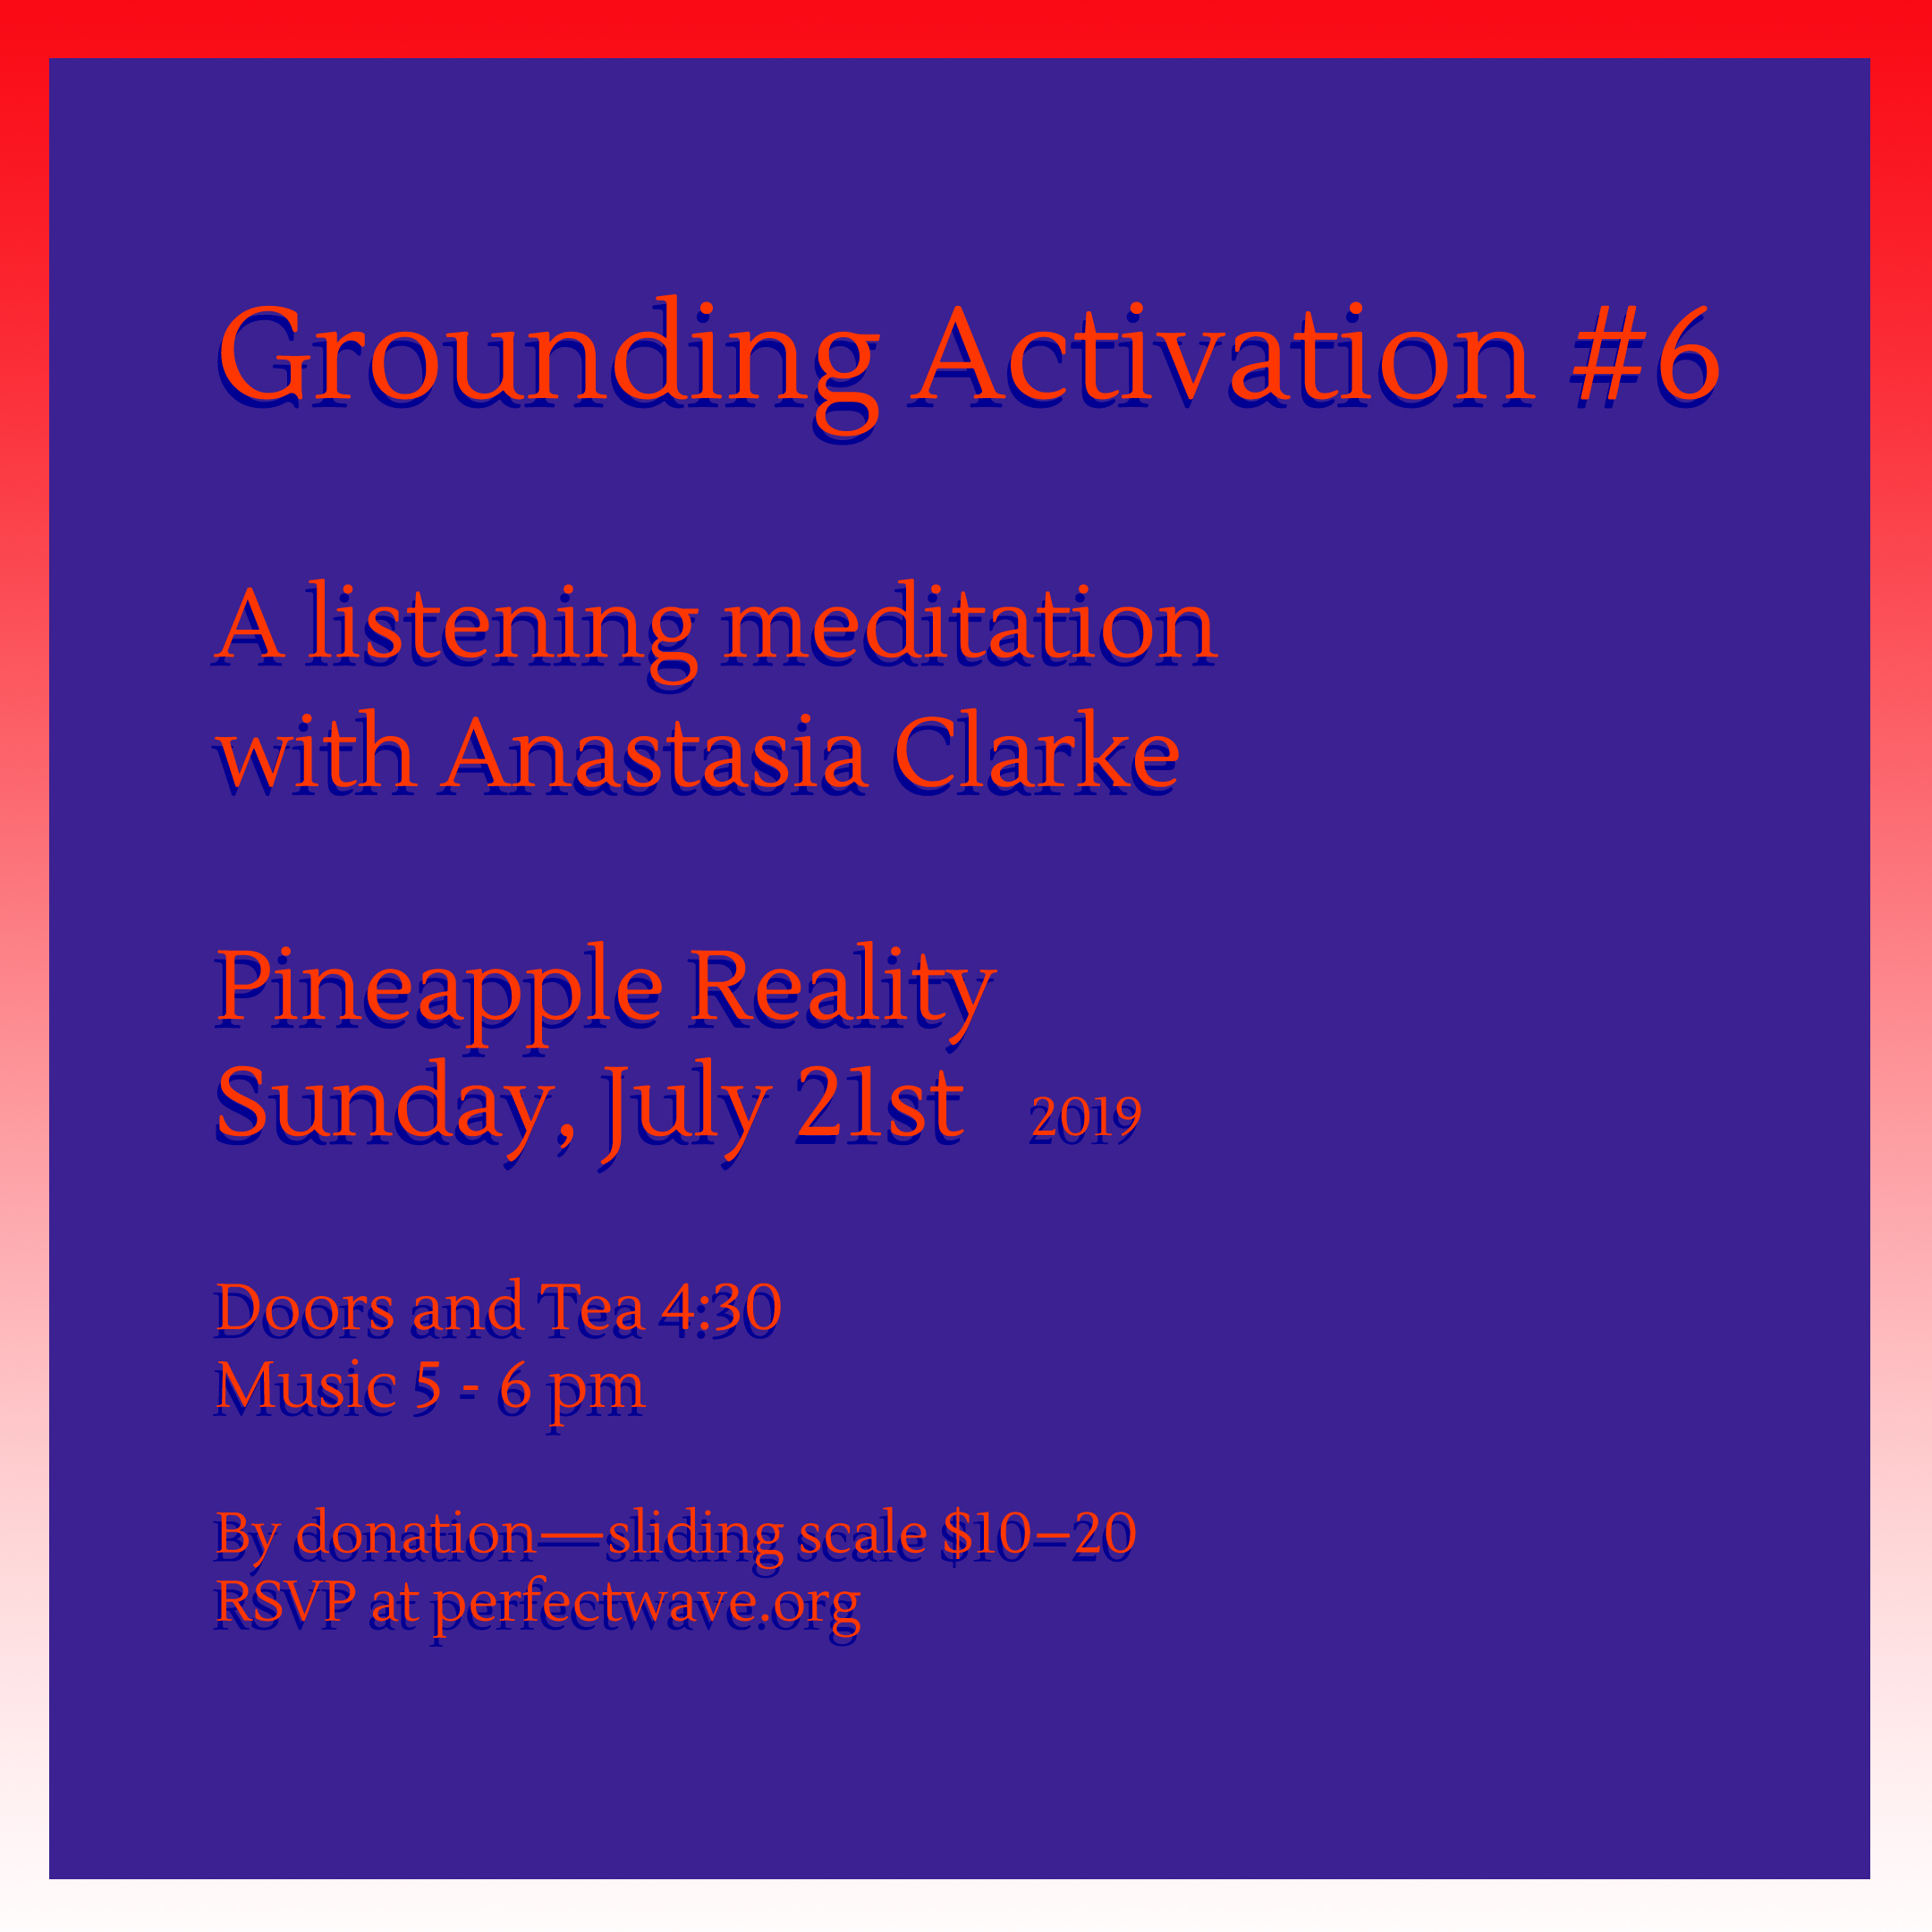 GroundingActivation06insta.jpg